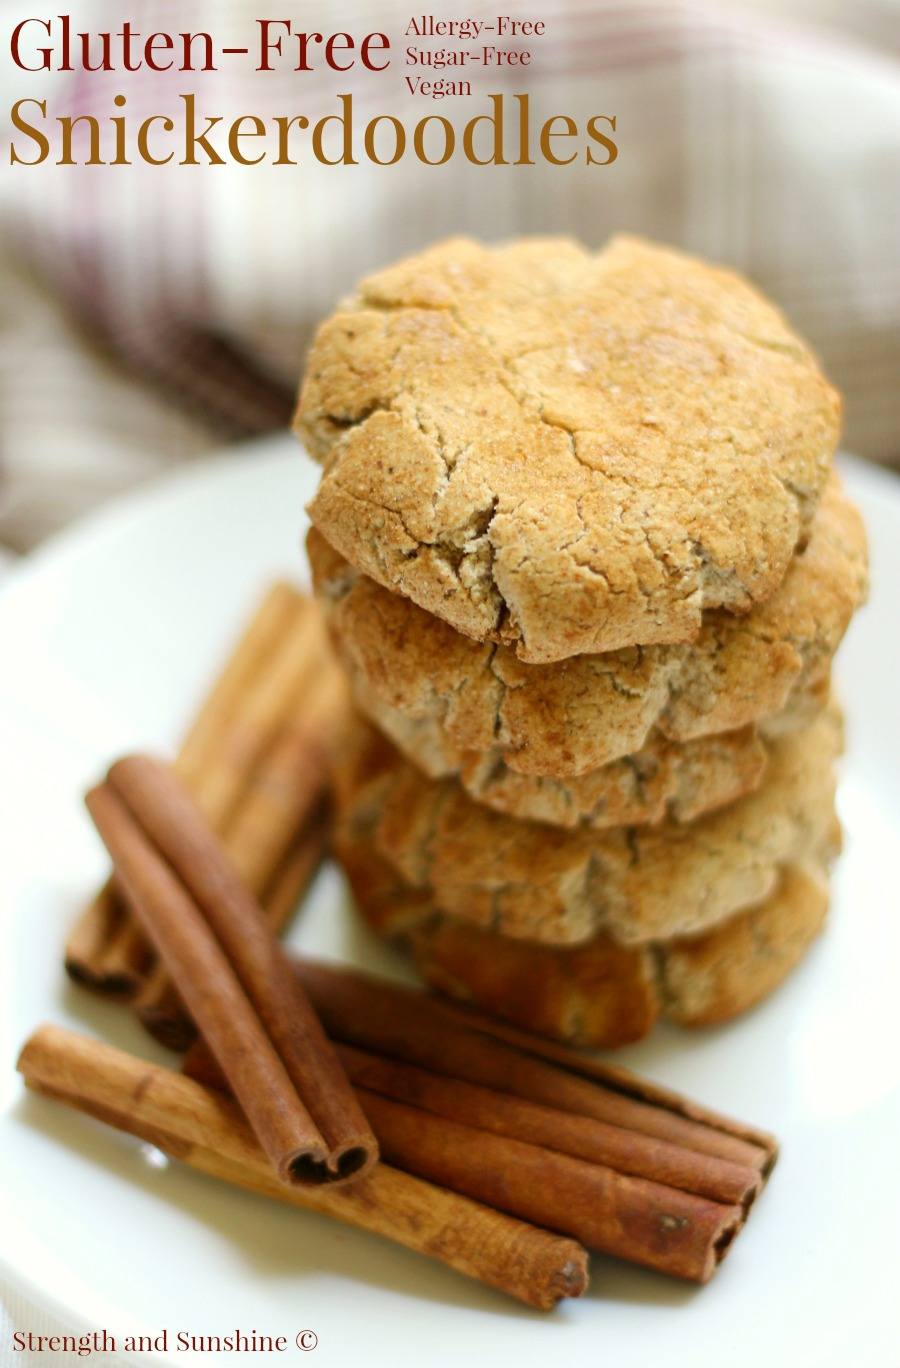 Gluten-Free Snickerdoodles | Strength and Sunshine @RebeccaGF666 The holiday season is not complete without a batch of snickerdoodles! These are gluten-free, allergy-free, vegan, sugar-free, and oil-free! Not only can everyone enjoy this snickerdoodle recipe, but Santa won't feel bad about the extra dessert!